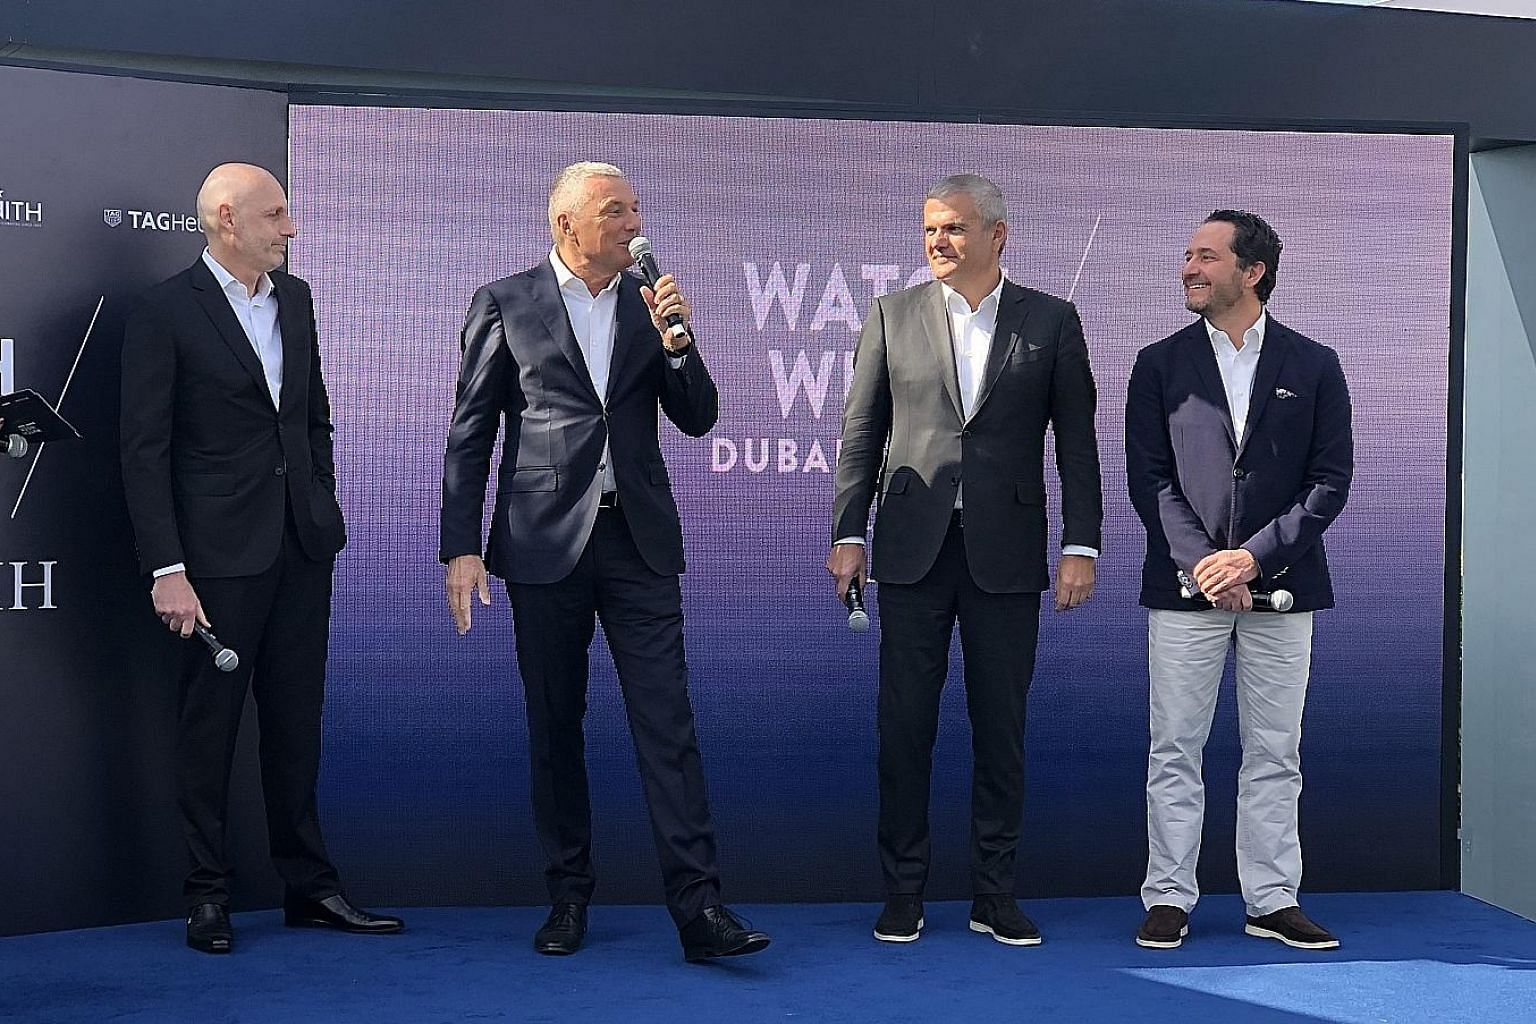 (From left) Mr Stephane Bianchi, head of LVMH watchmaking and chief executive officer of Tag Heuer; Mr Jean-Christophe Babin, CEO of Bvlgari; Mr Ricardo Guadalupe, CEO of Hublot; and Mr Julien Tornare, CEO of Zenith, launched LVMH Watch Week on Monda